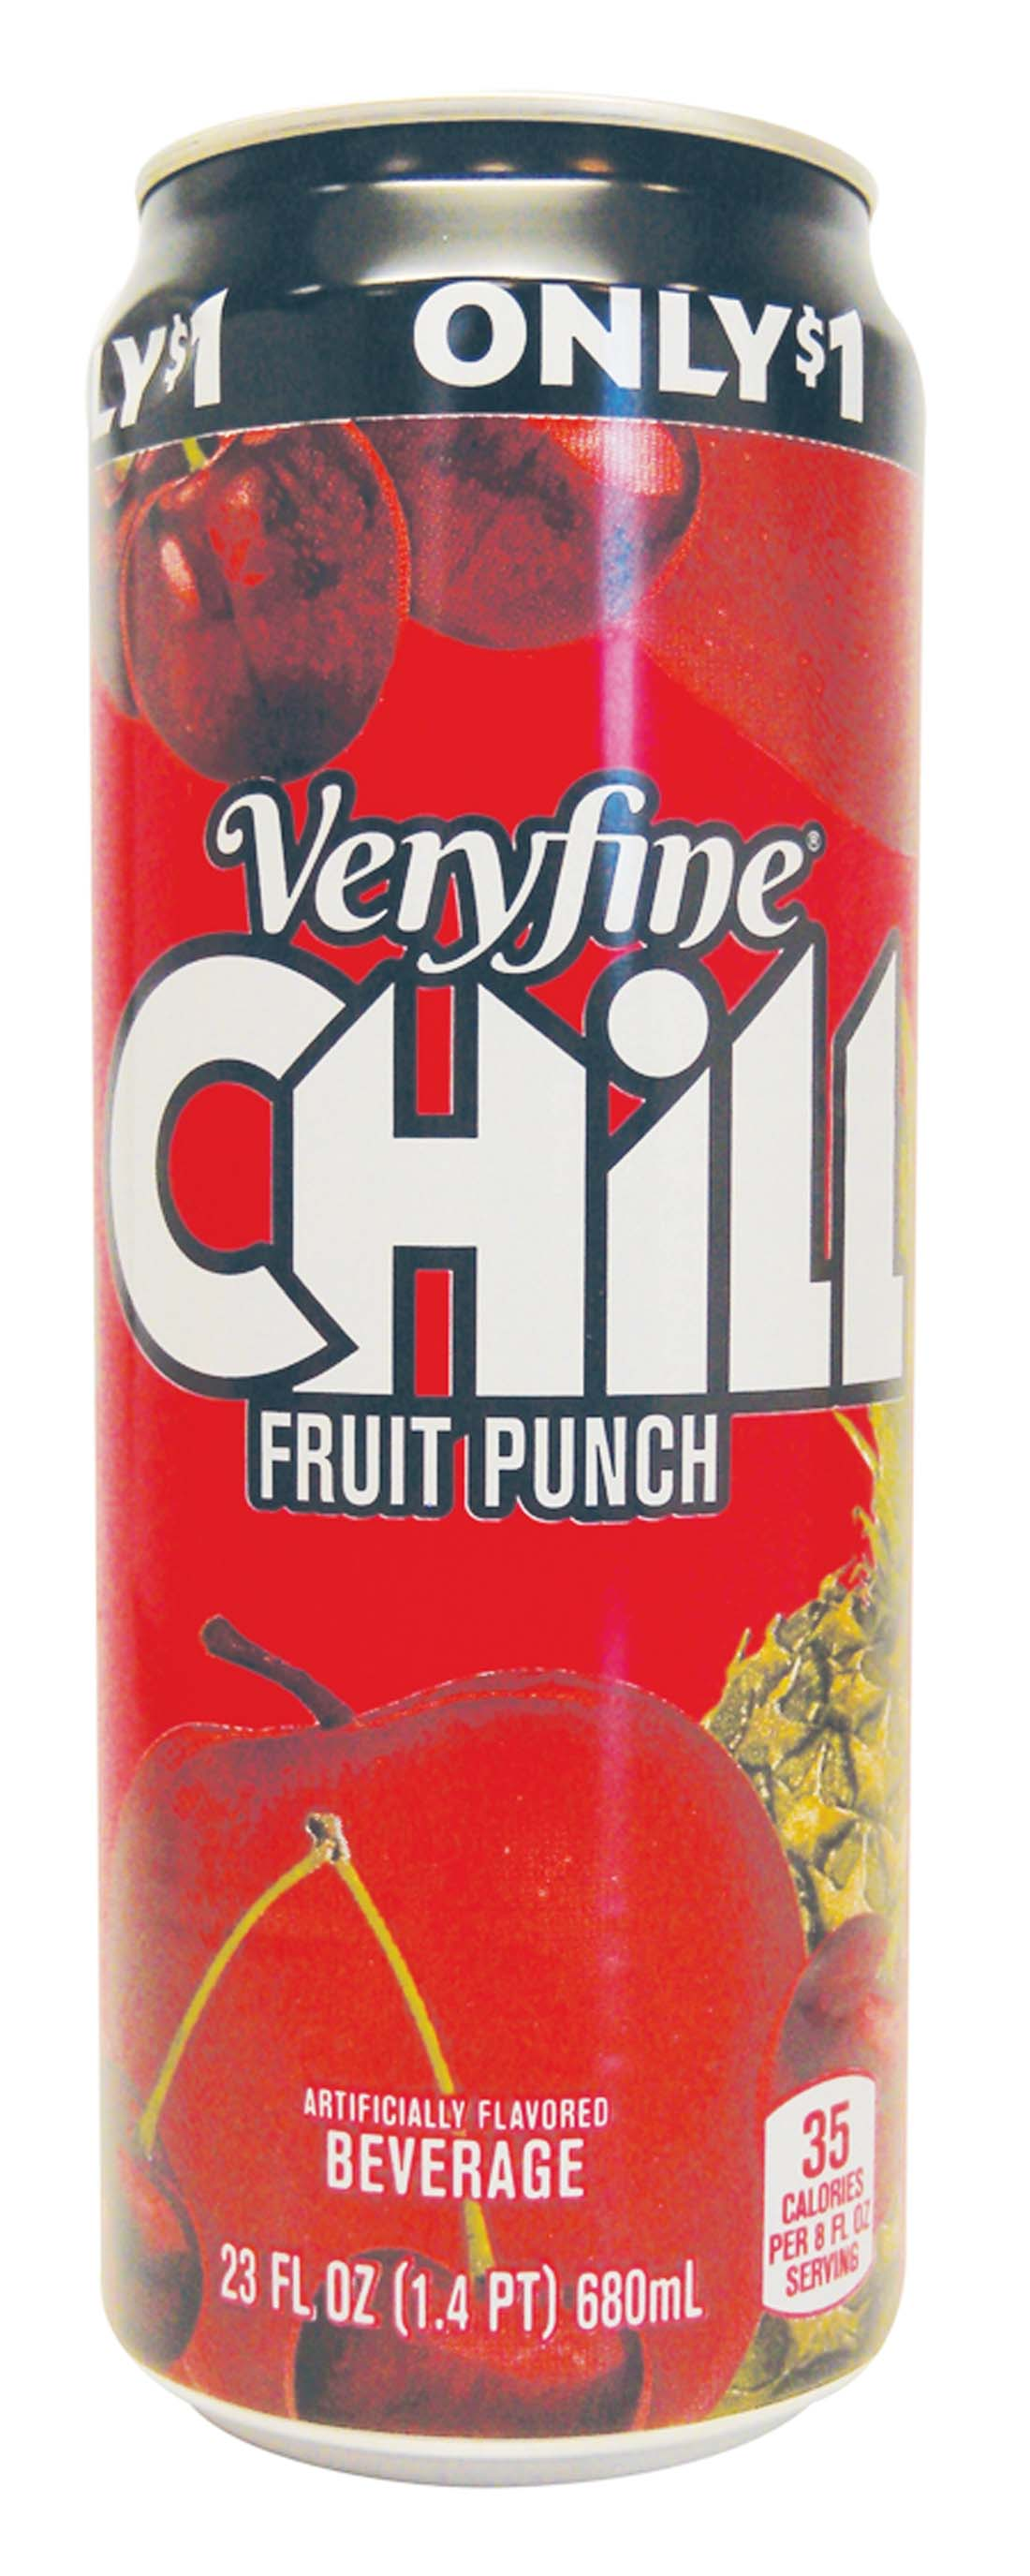 View VERY FINE CHILL JUICE DRINK 23 OZ FRUIT PUNCH PREPRICED $1